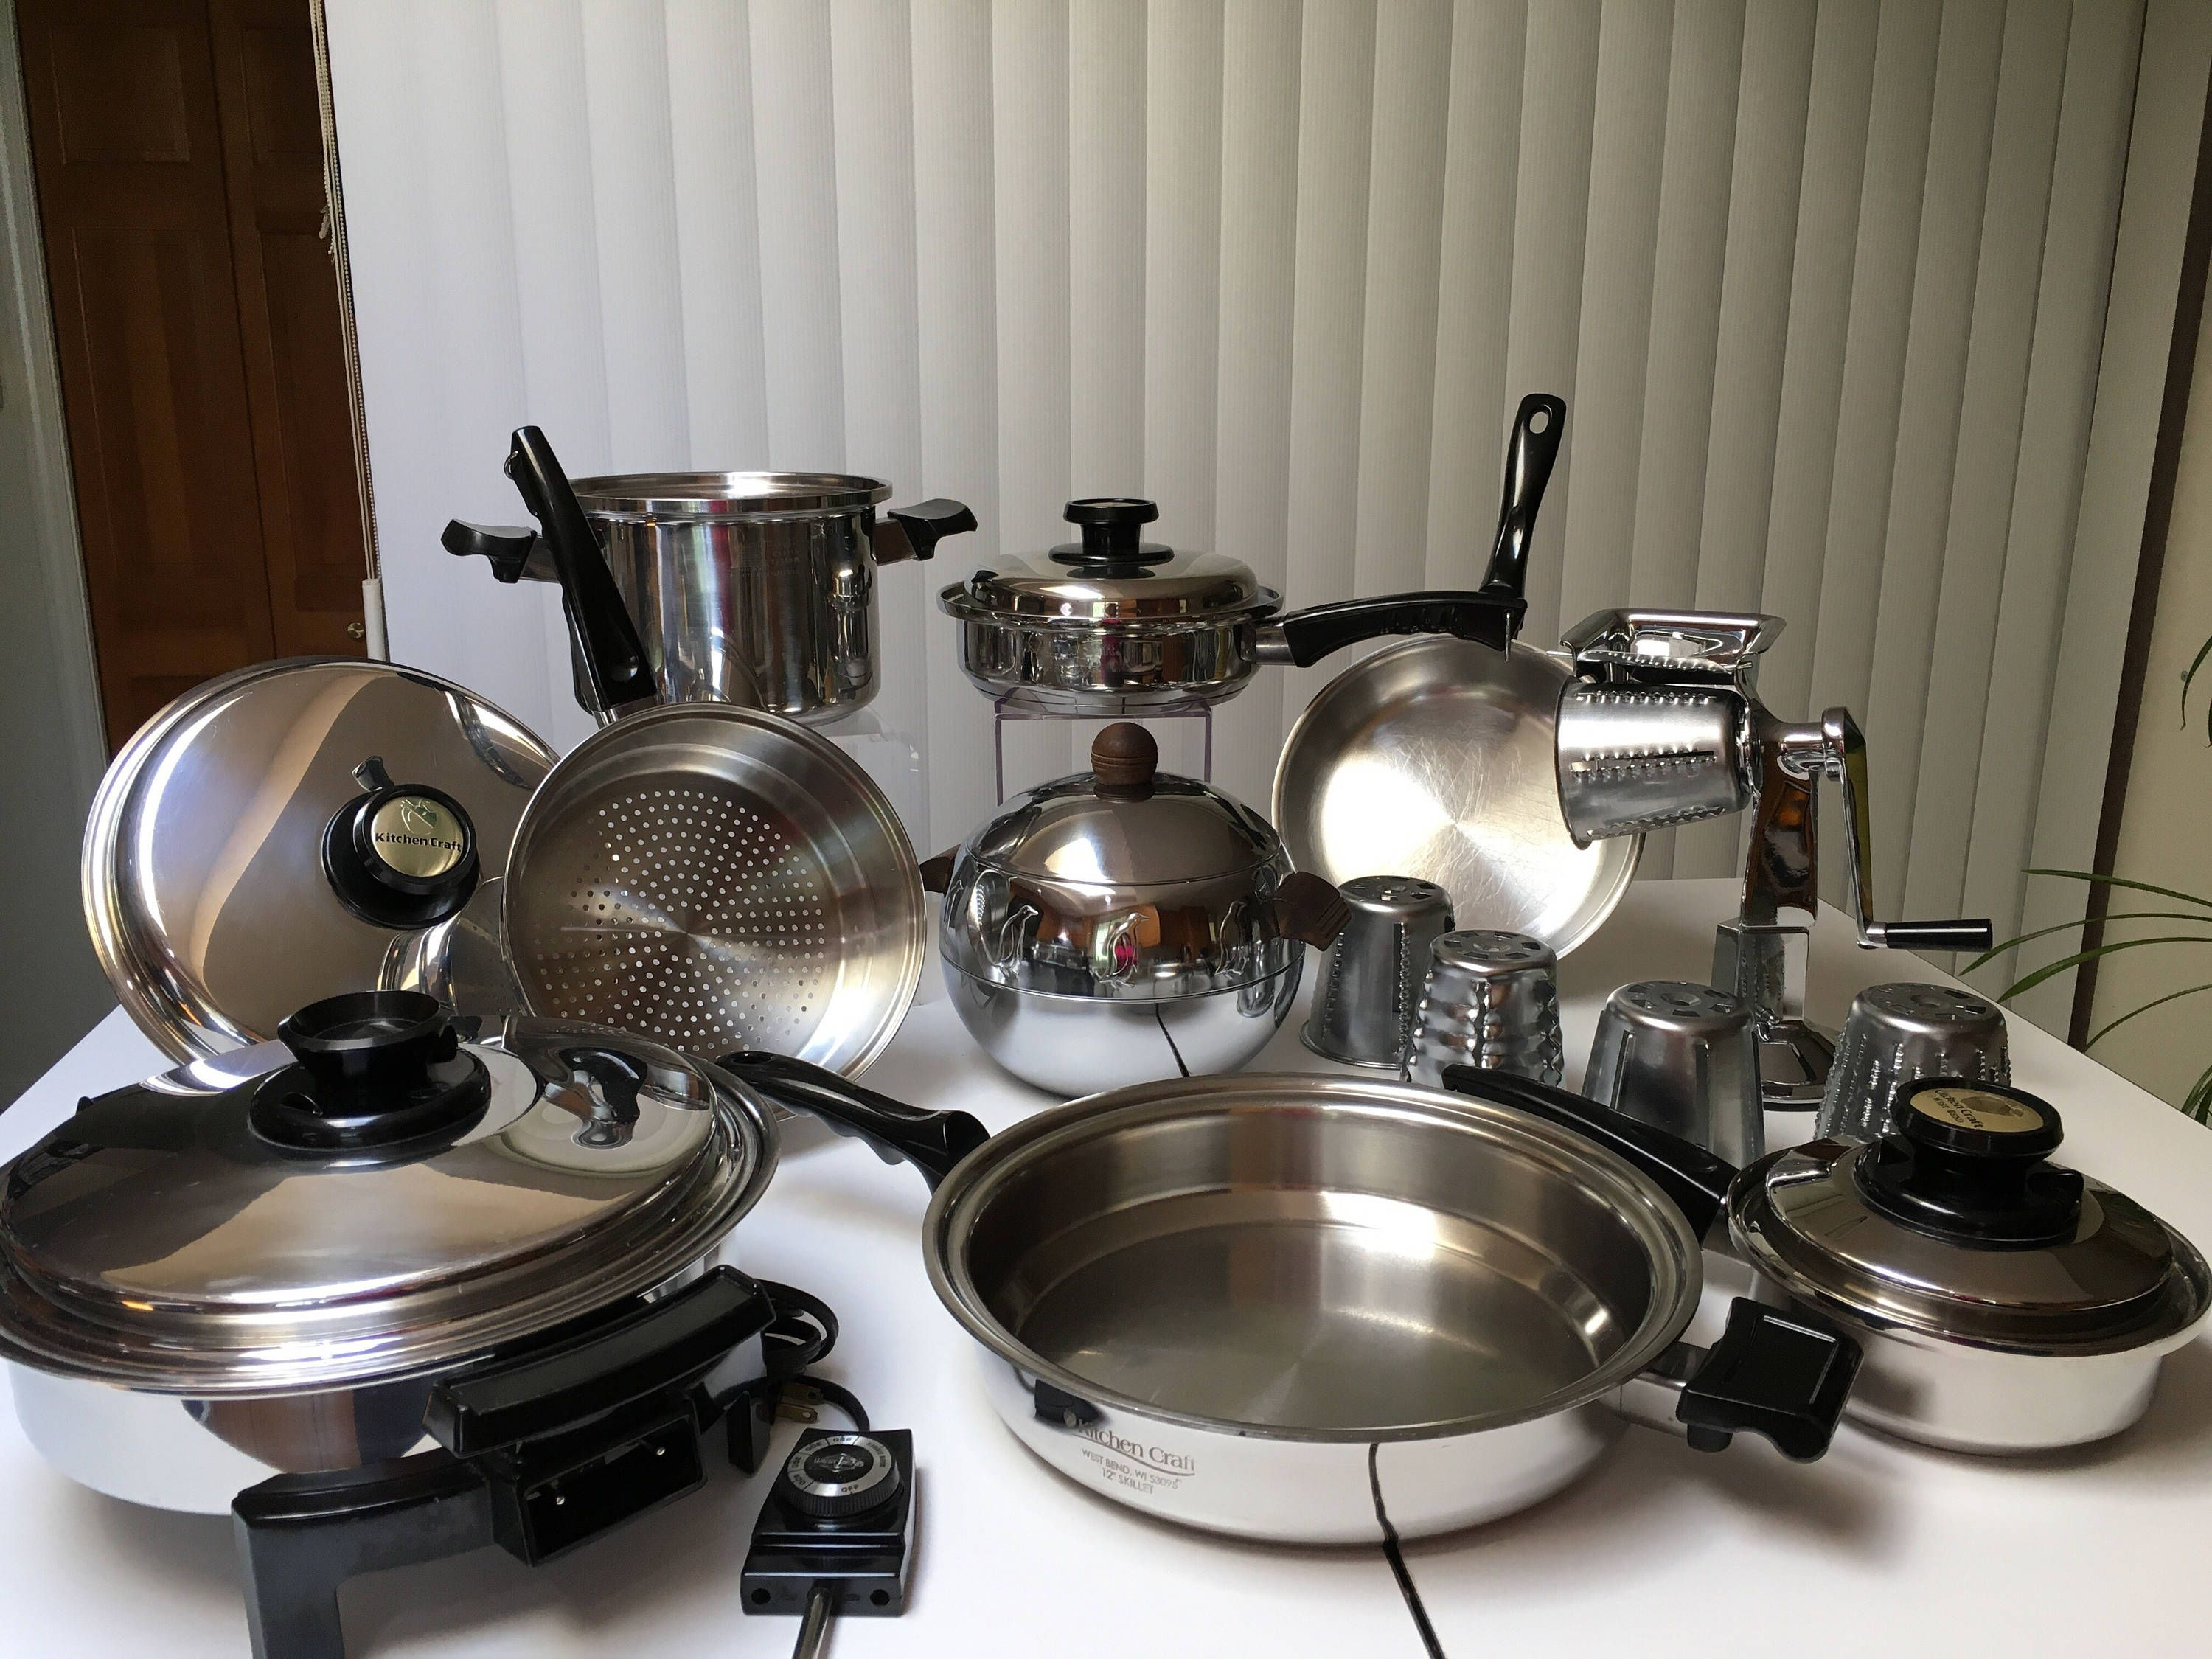 18pc Kitchen Craft Waterless Cookware Set Usa Stainless Steel W